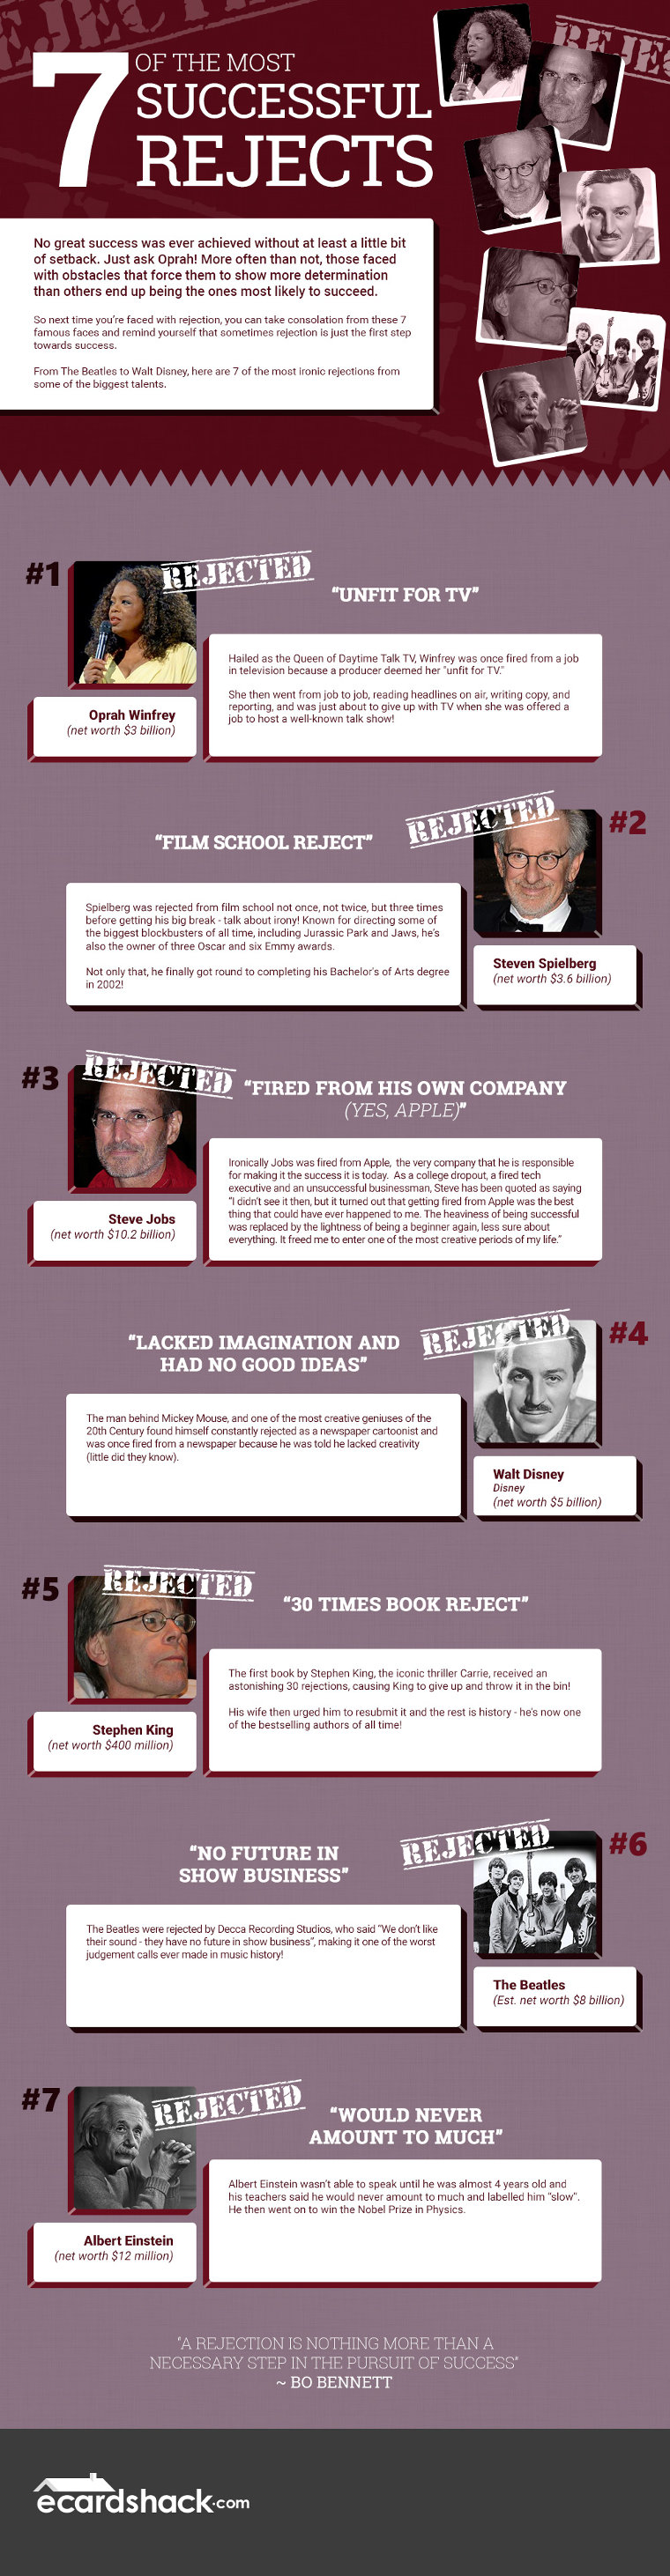 Most successful rejects - infographic by eCardShack.com